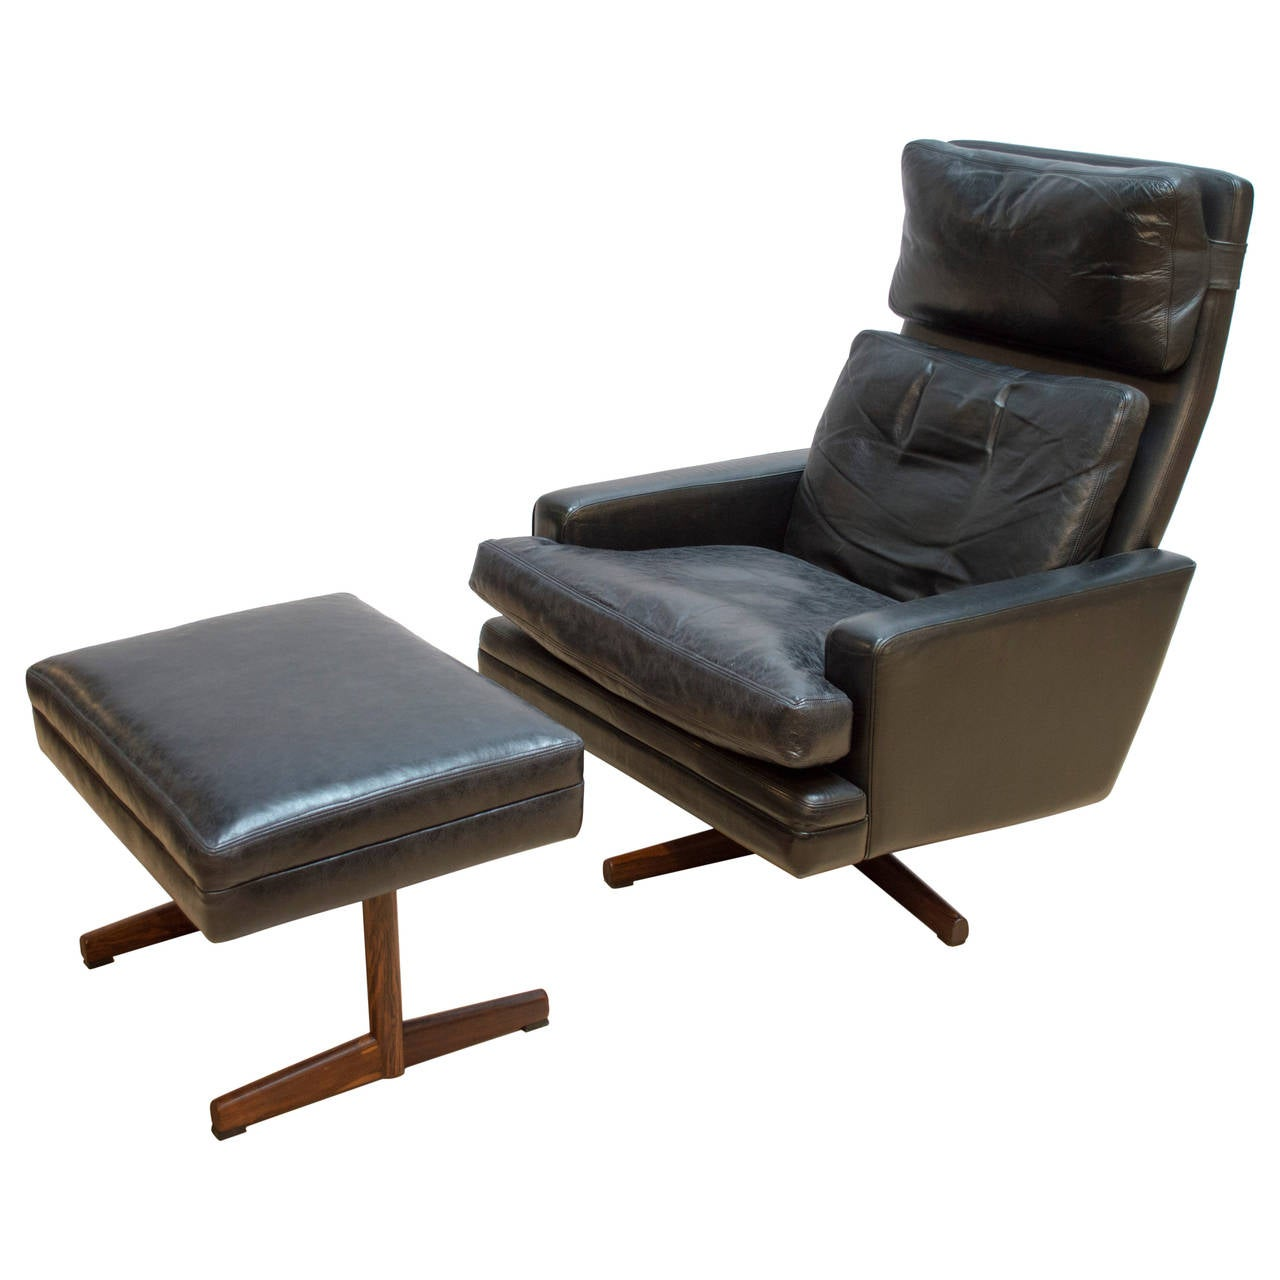 Frederik Kayser Leather Lounge Chair with Ottoman at 1stdibs